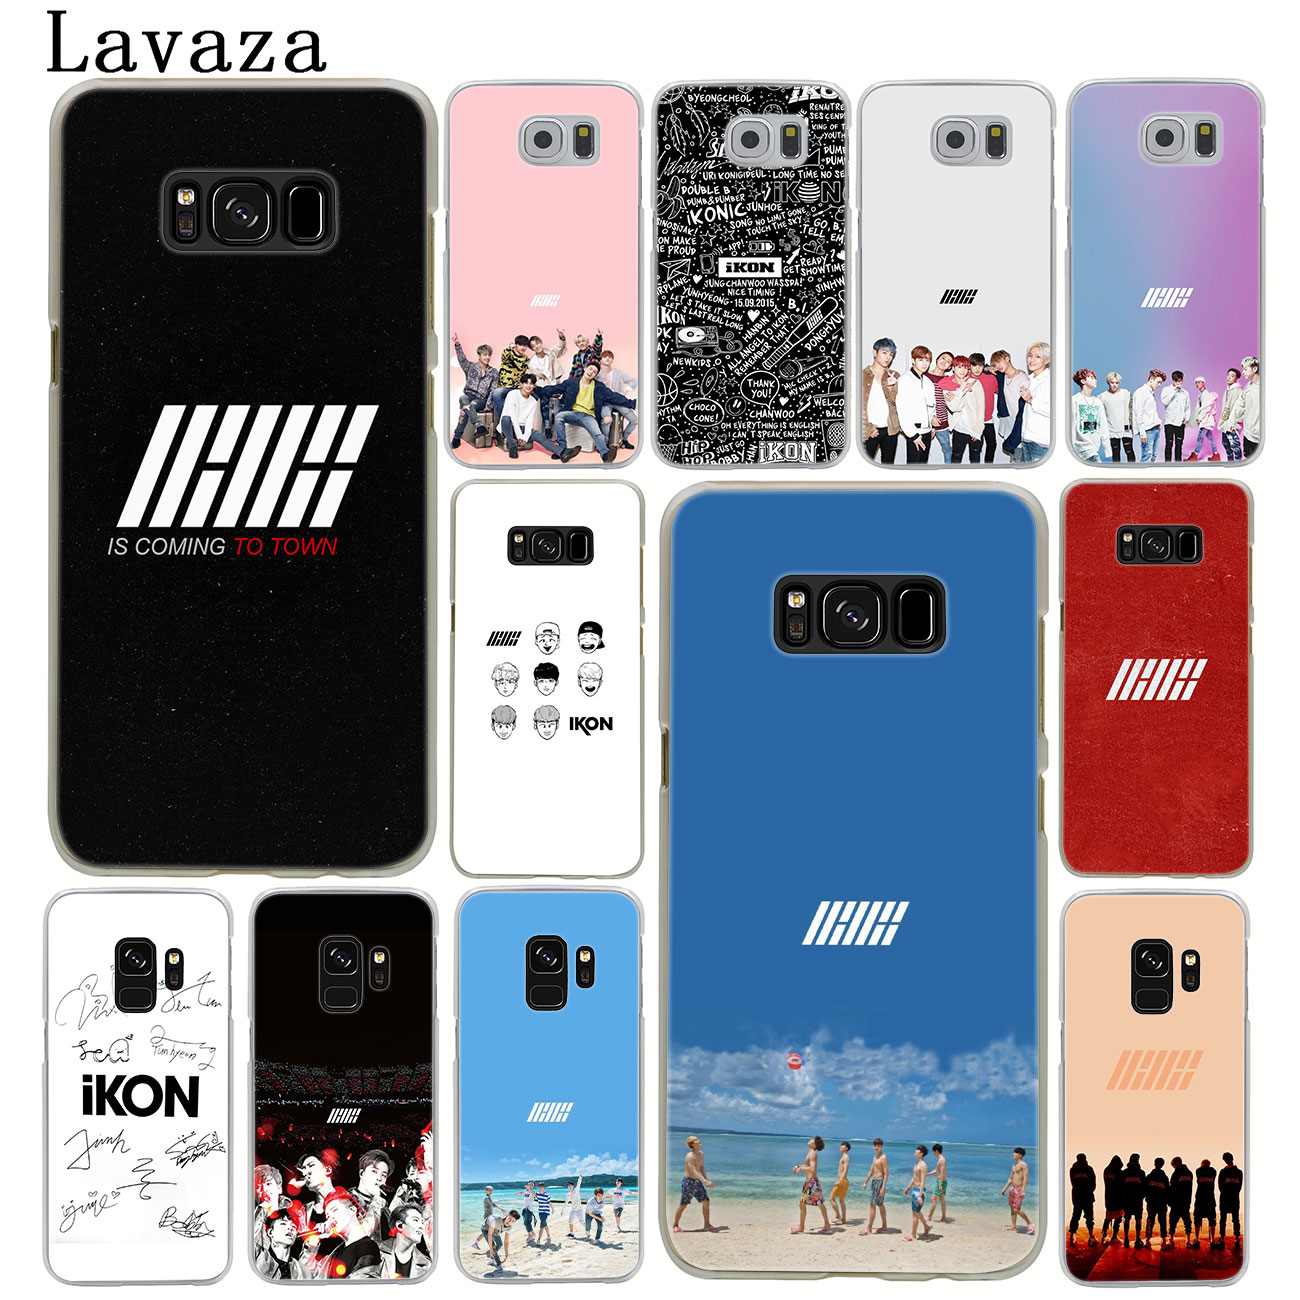 US $1 27 33% OFF|Lavaza ikon kpop music Hard Phone Case for Samsung Galaxy  S10 S10E S8 Plus S6 S7 Edge S9 Plus Cover-in Half-wrapped Cases from